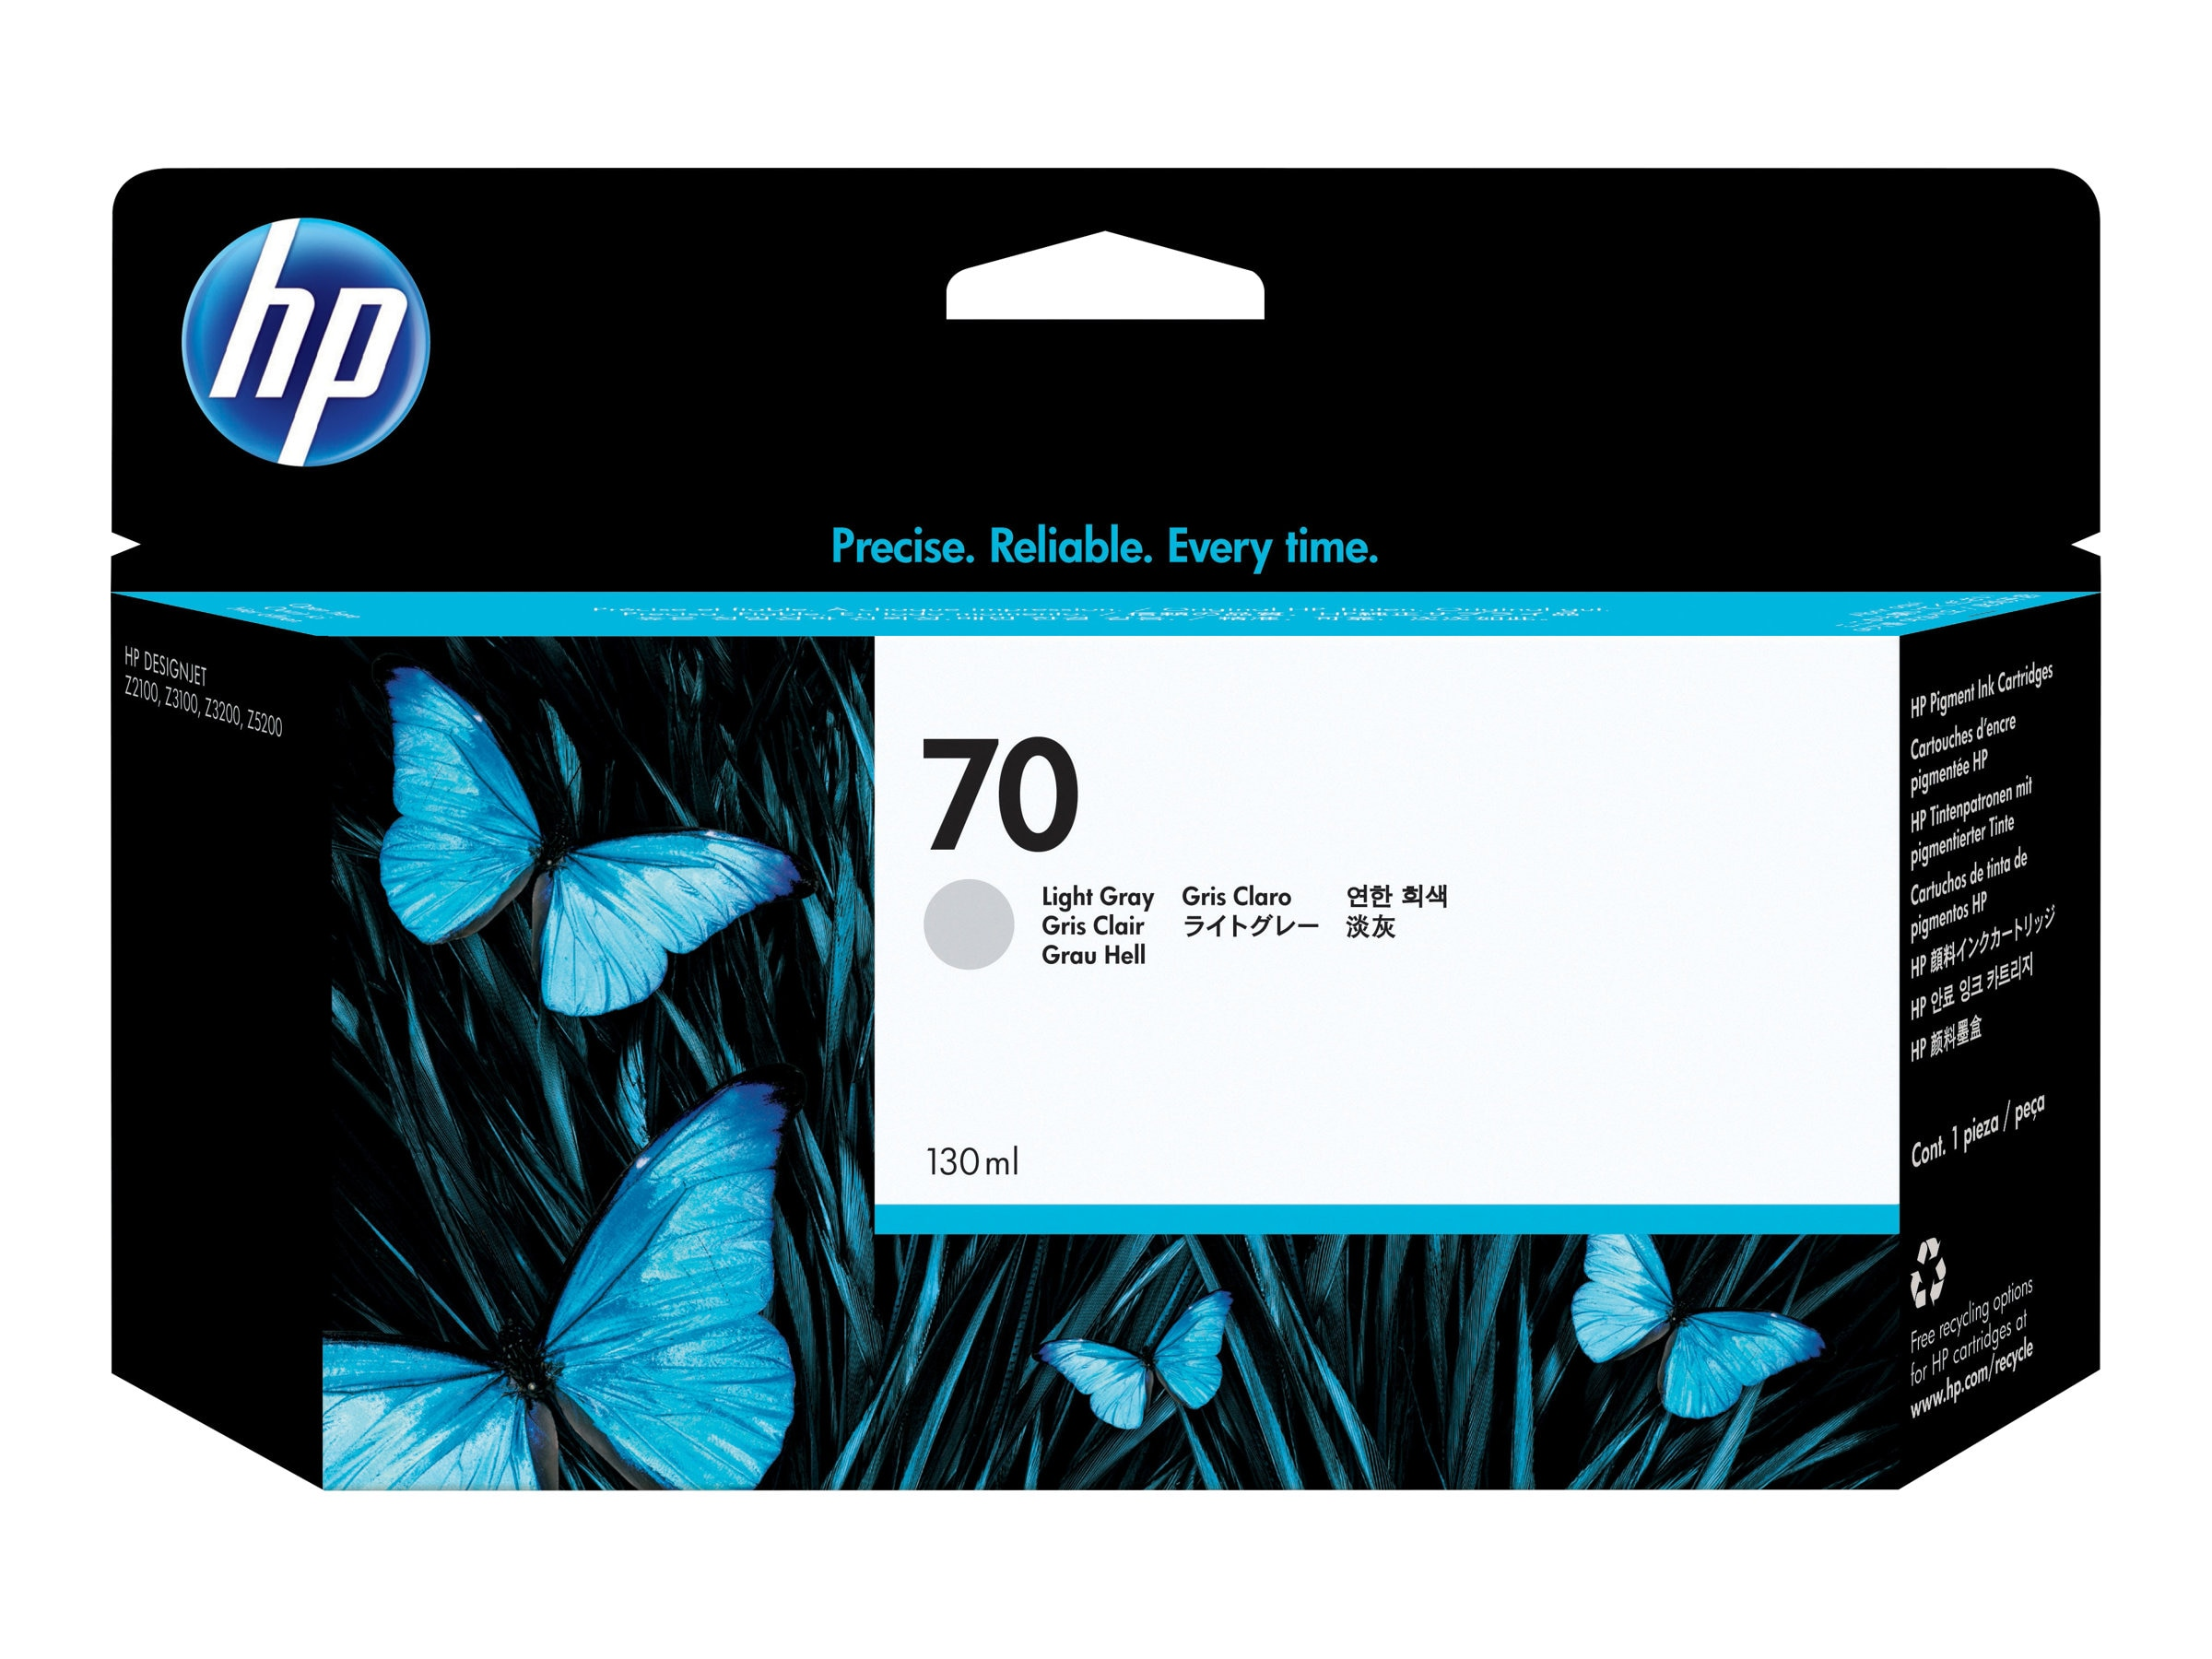 HP 70 Light Gray Ink Cartridge for HP DesignJet Printers